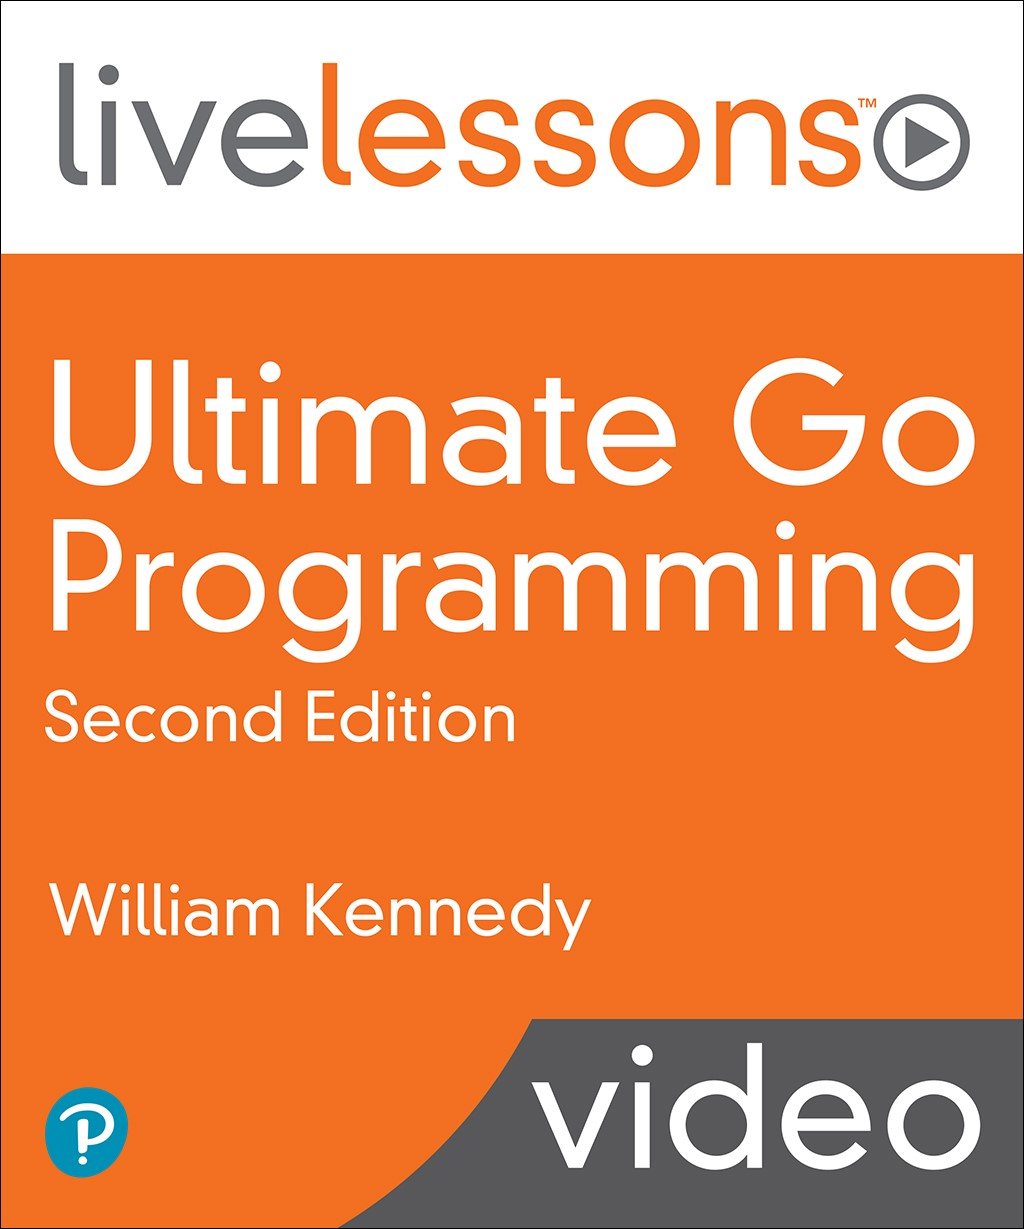 Ultimate Go Programming, Second Edition